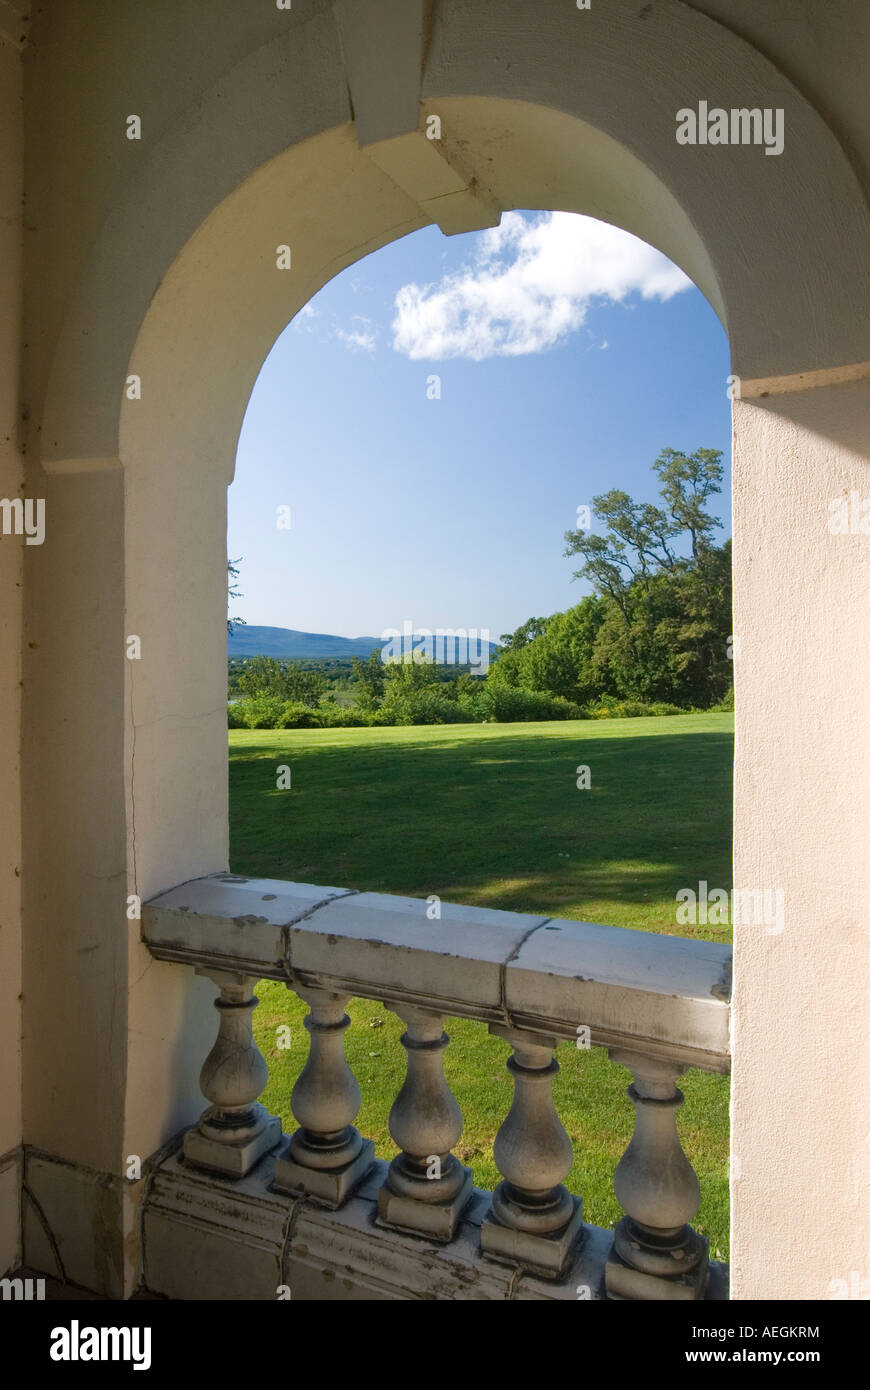 Bard College Campus on the Hudson River, August 2007 - Stock Image